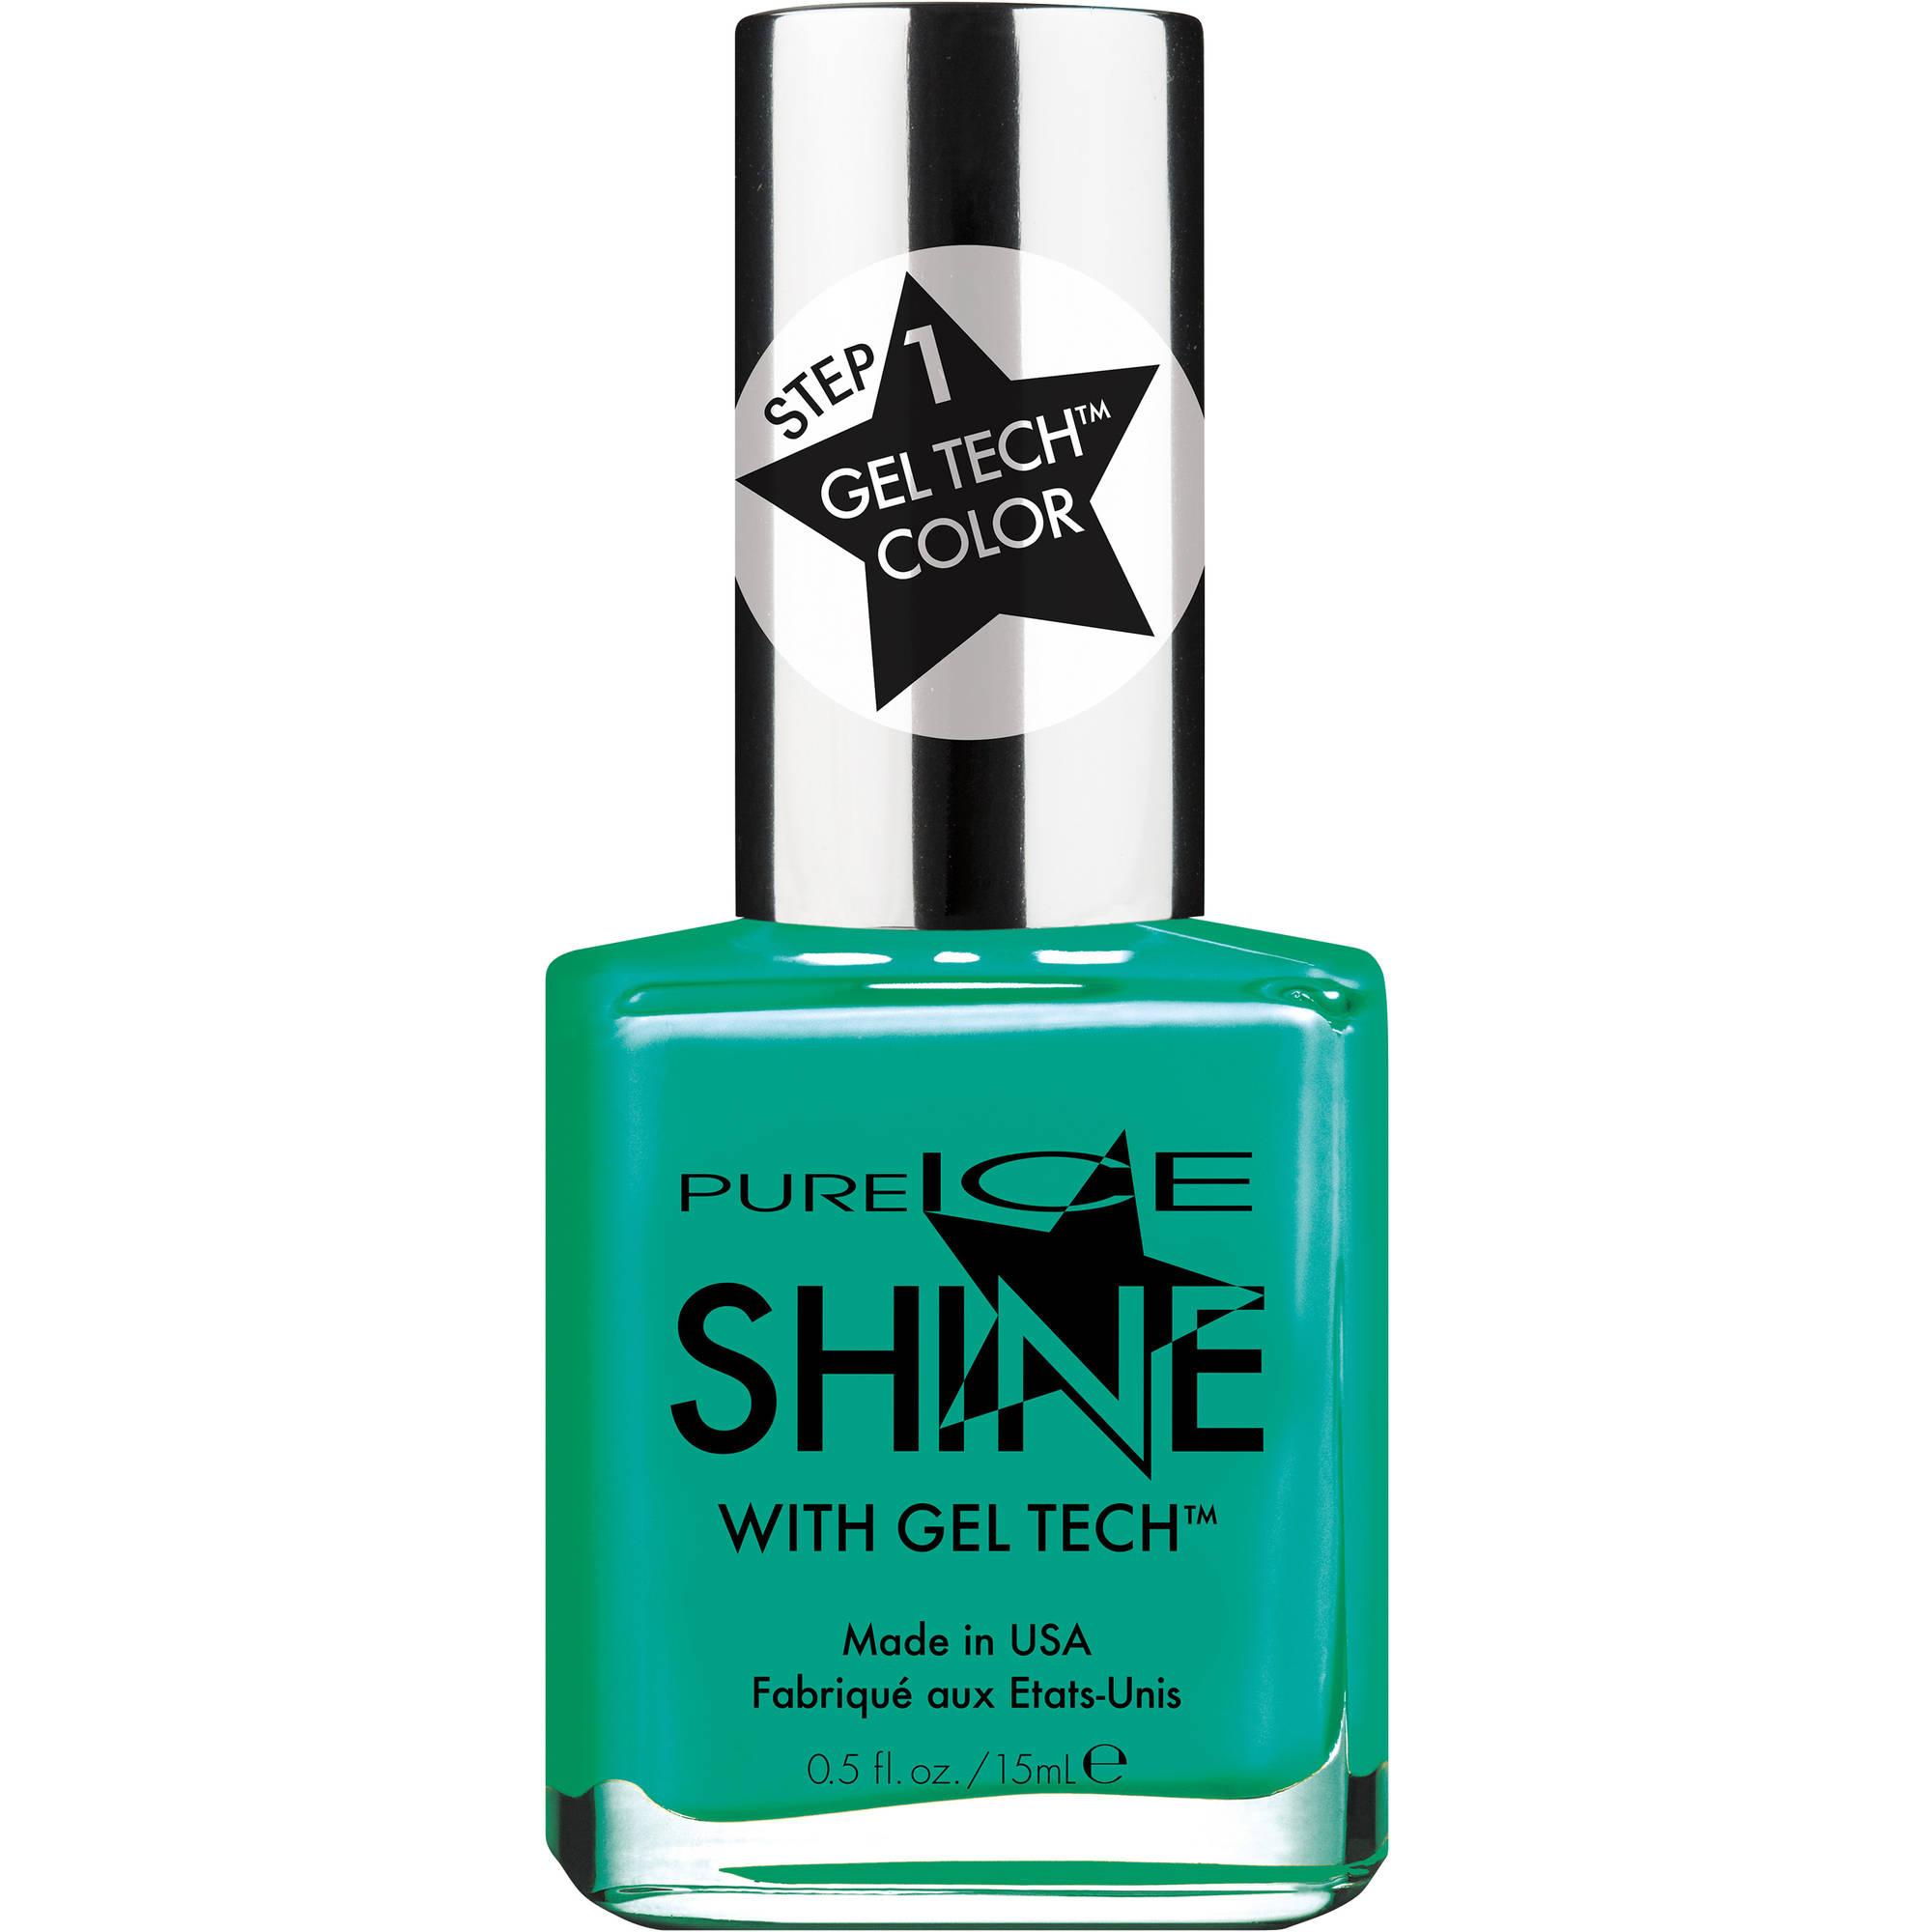 Pure Ice Shine with Gel Tech Nail Polish, More Bang for My Buck, 0.5 fl oz